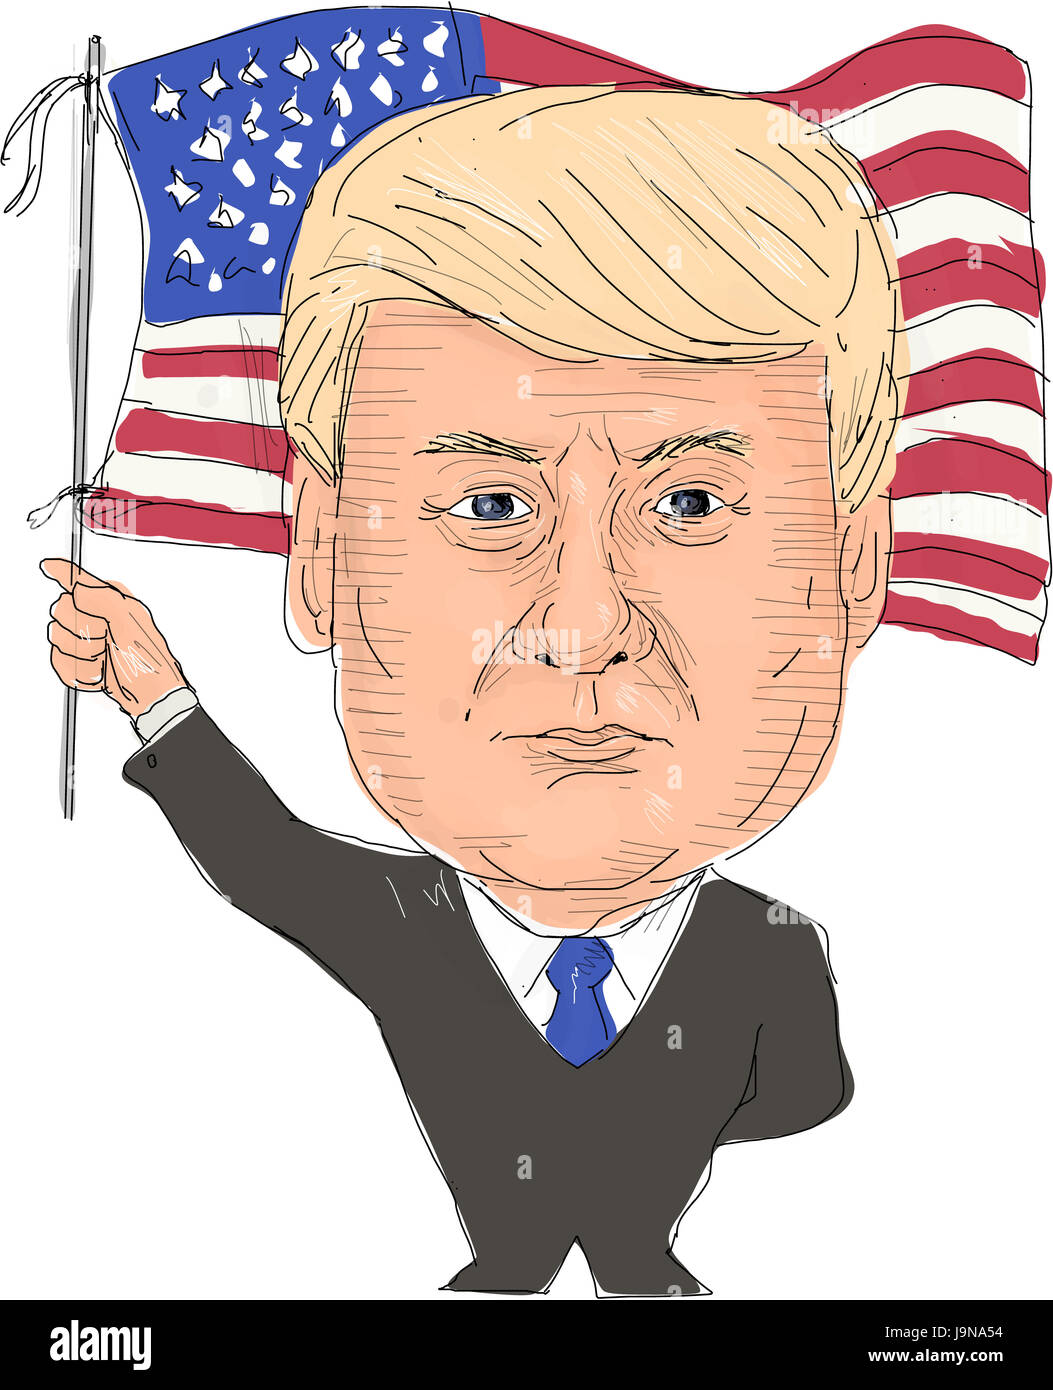 June 2, 2017: Watercolor style illustration of Donald Trump, President of the United States of America waving flag - Stock Image